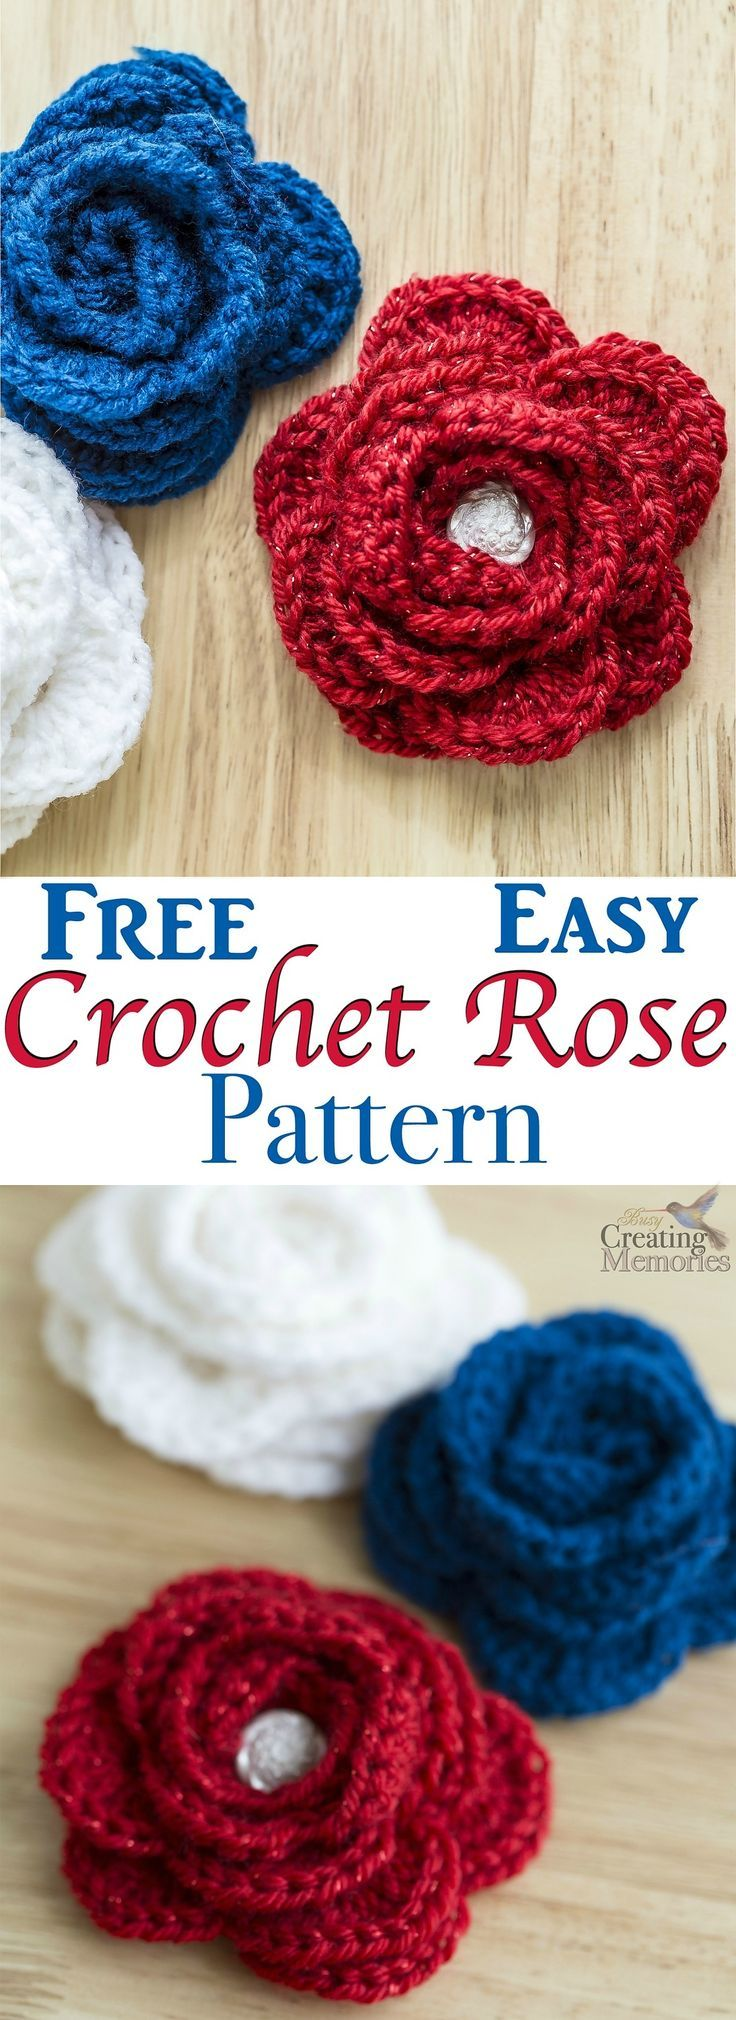 Is Knitting Or Crocheting Easier : Best images about crochet on pinterest